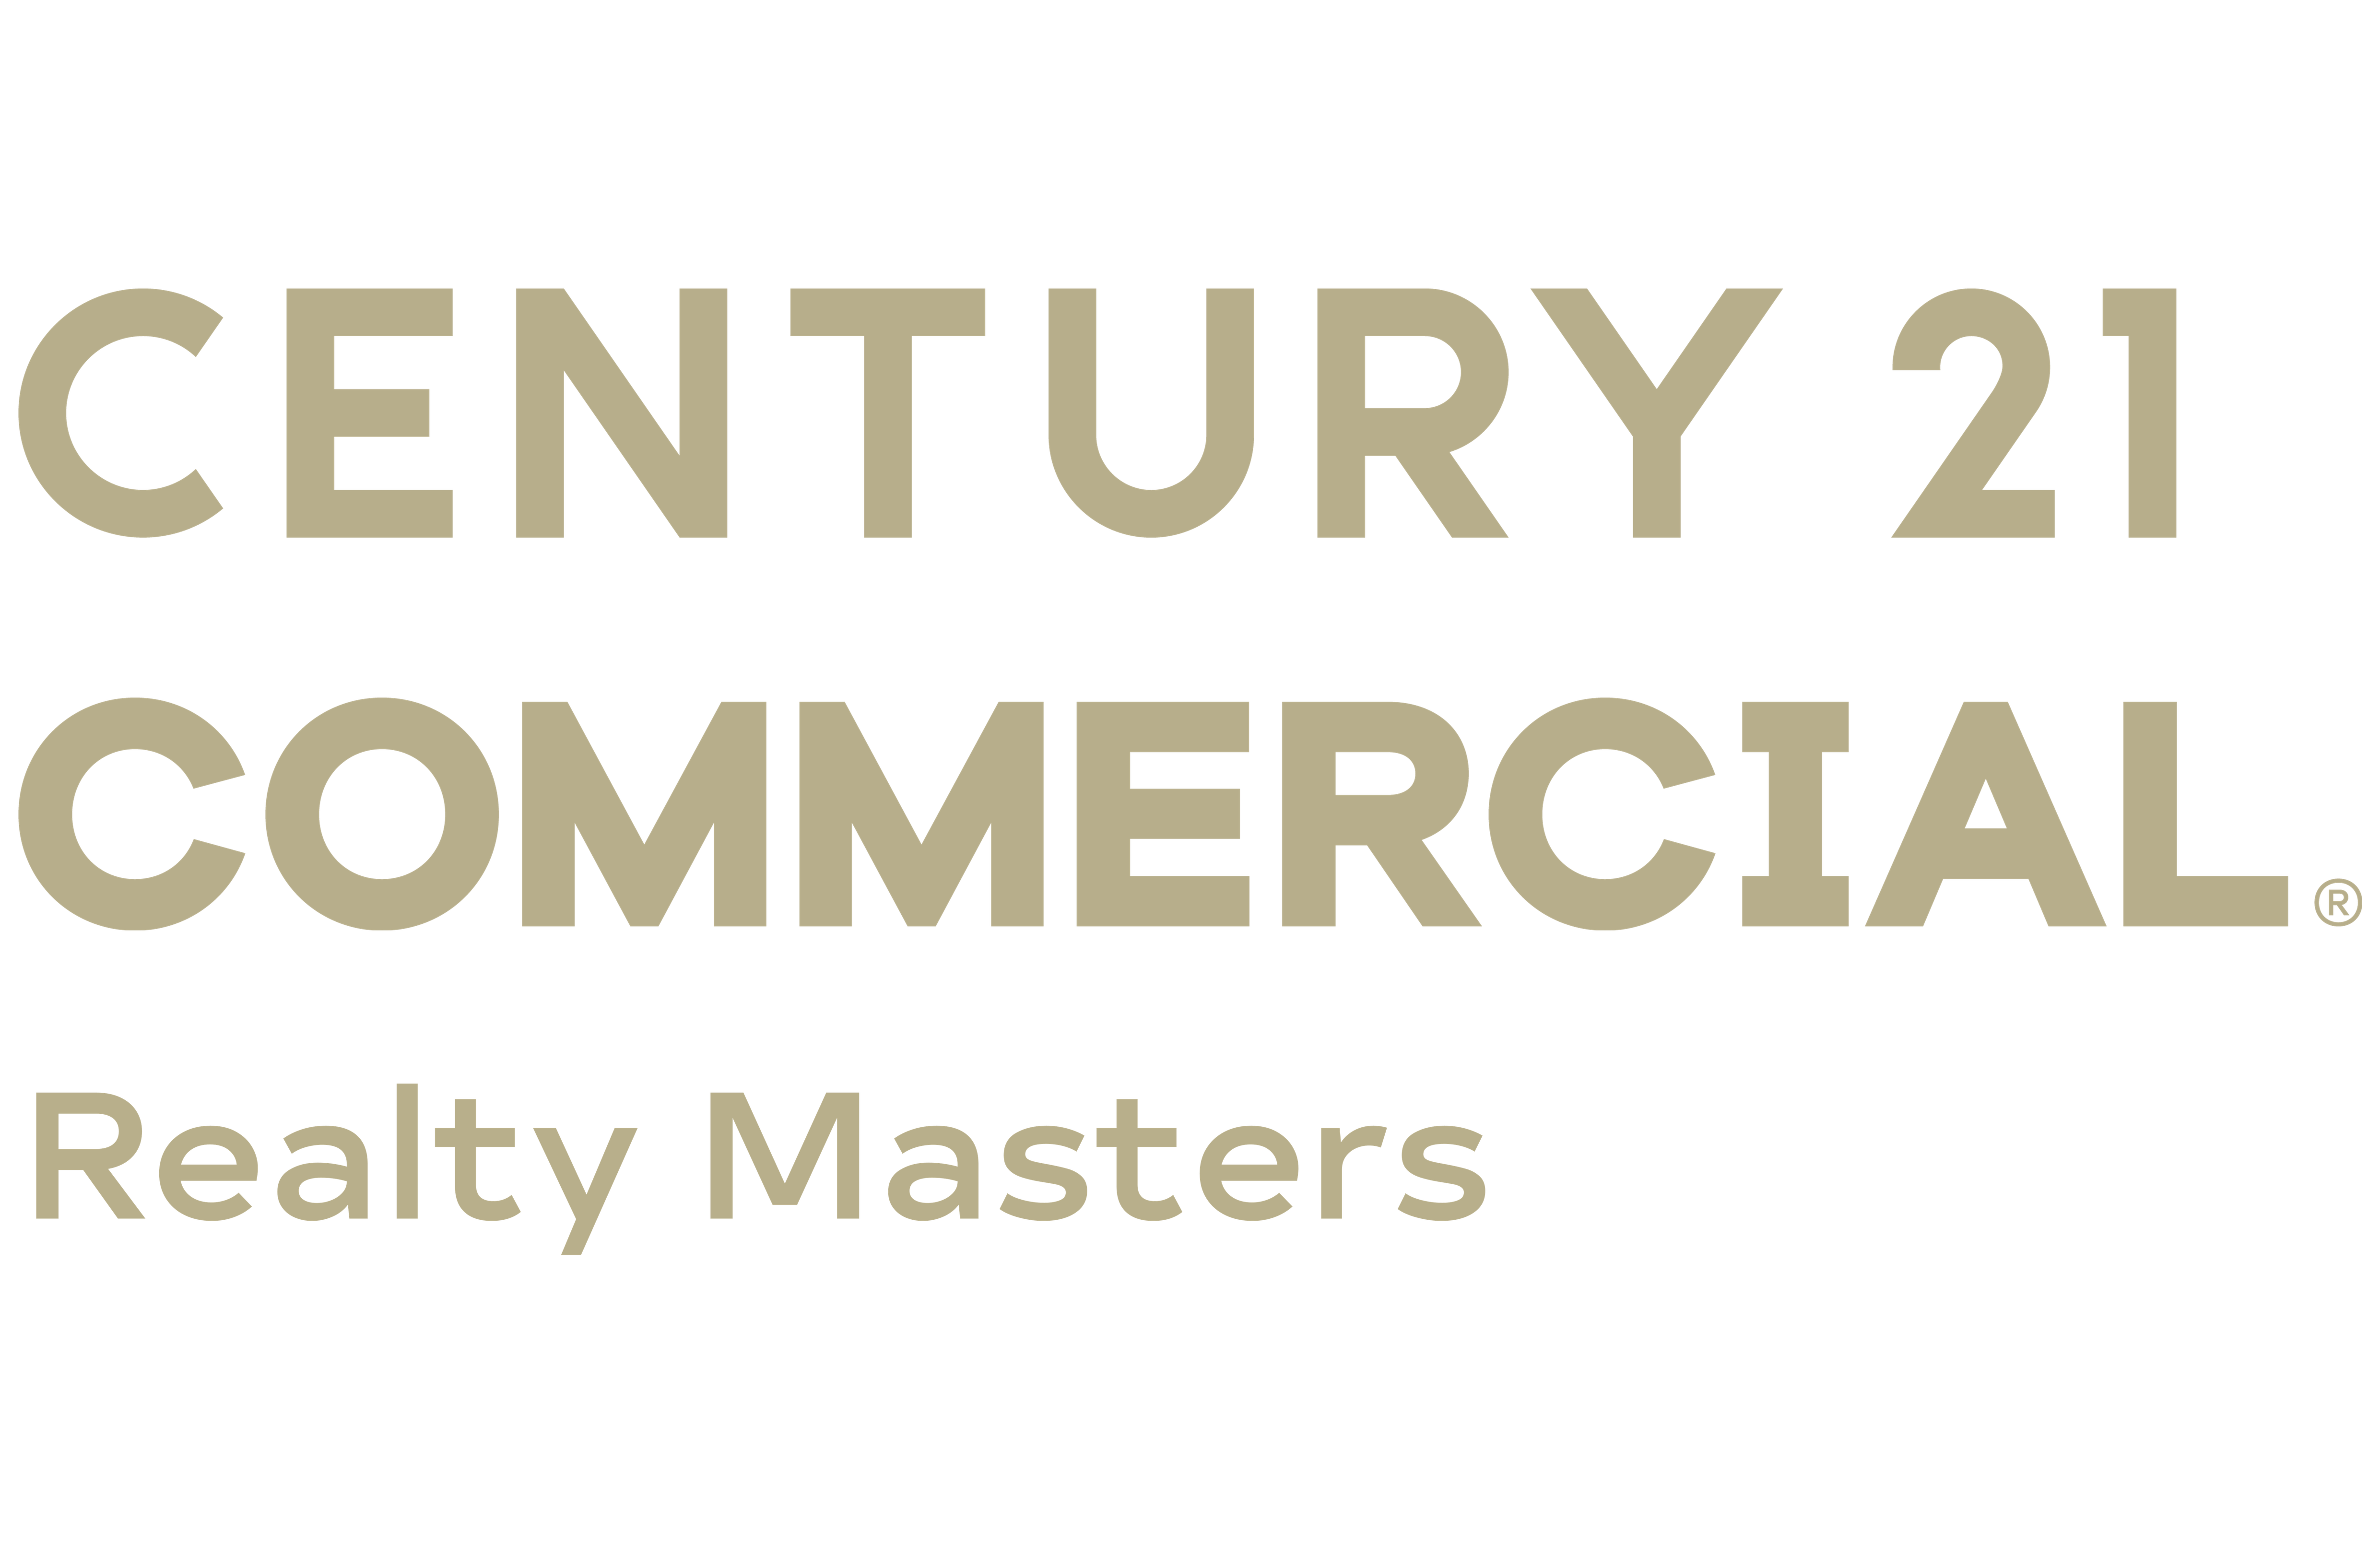 CENTURY 21 Realty Masters